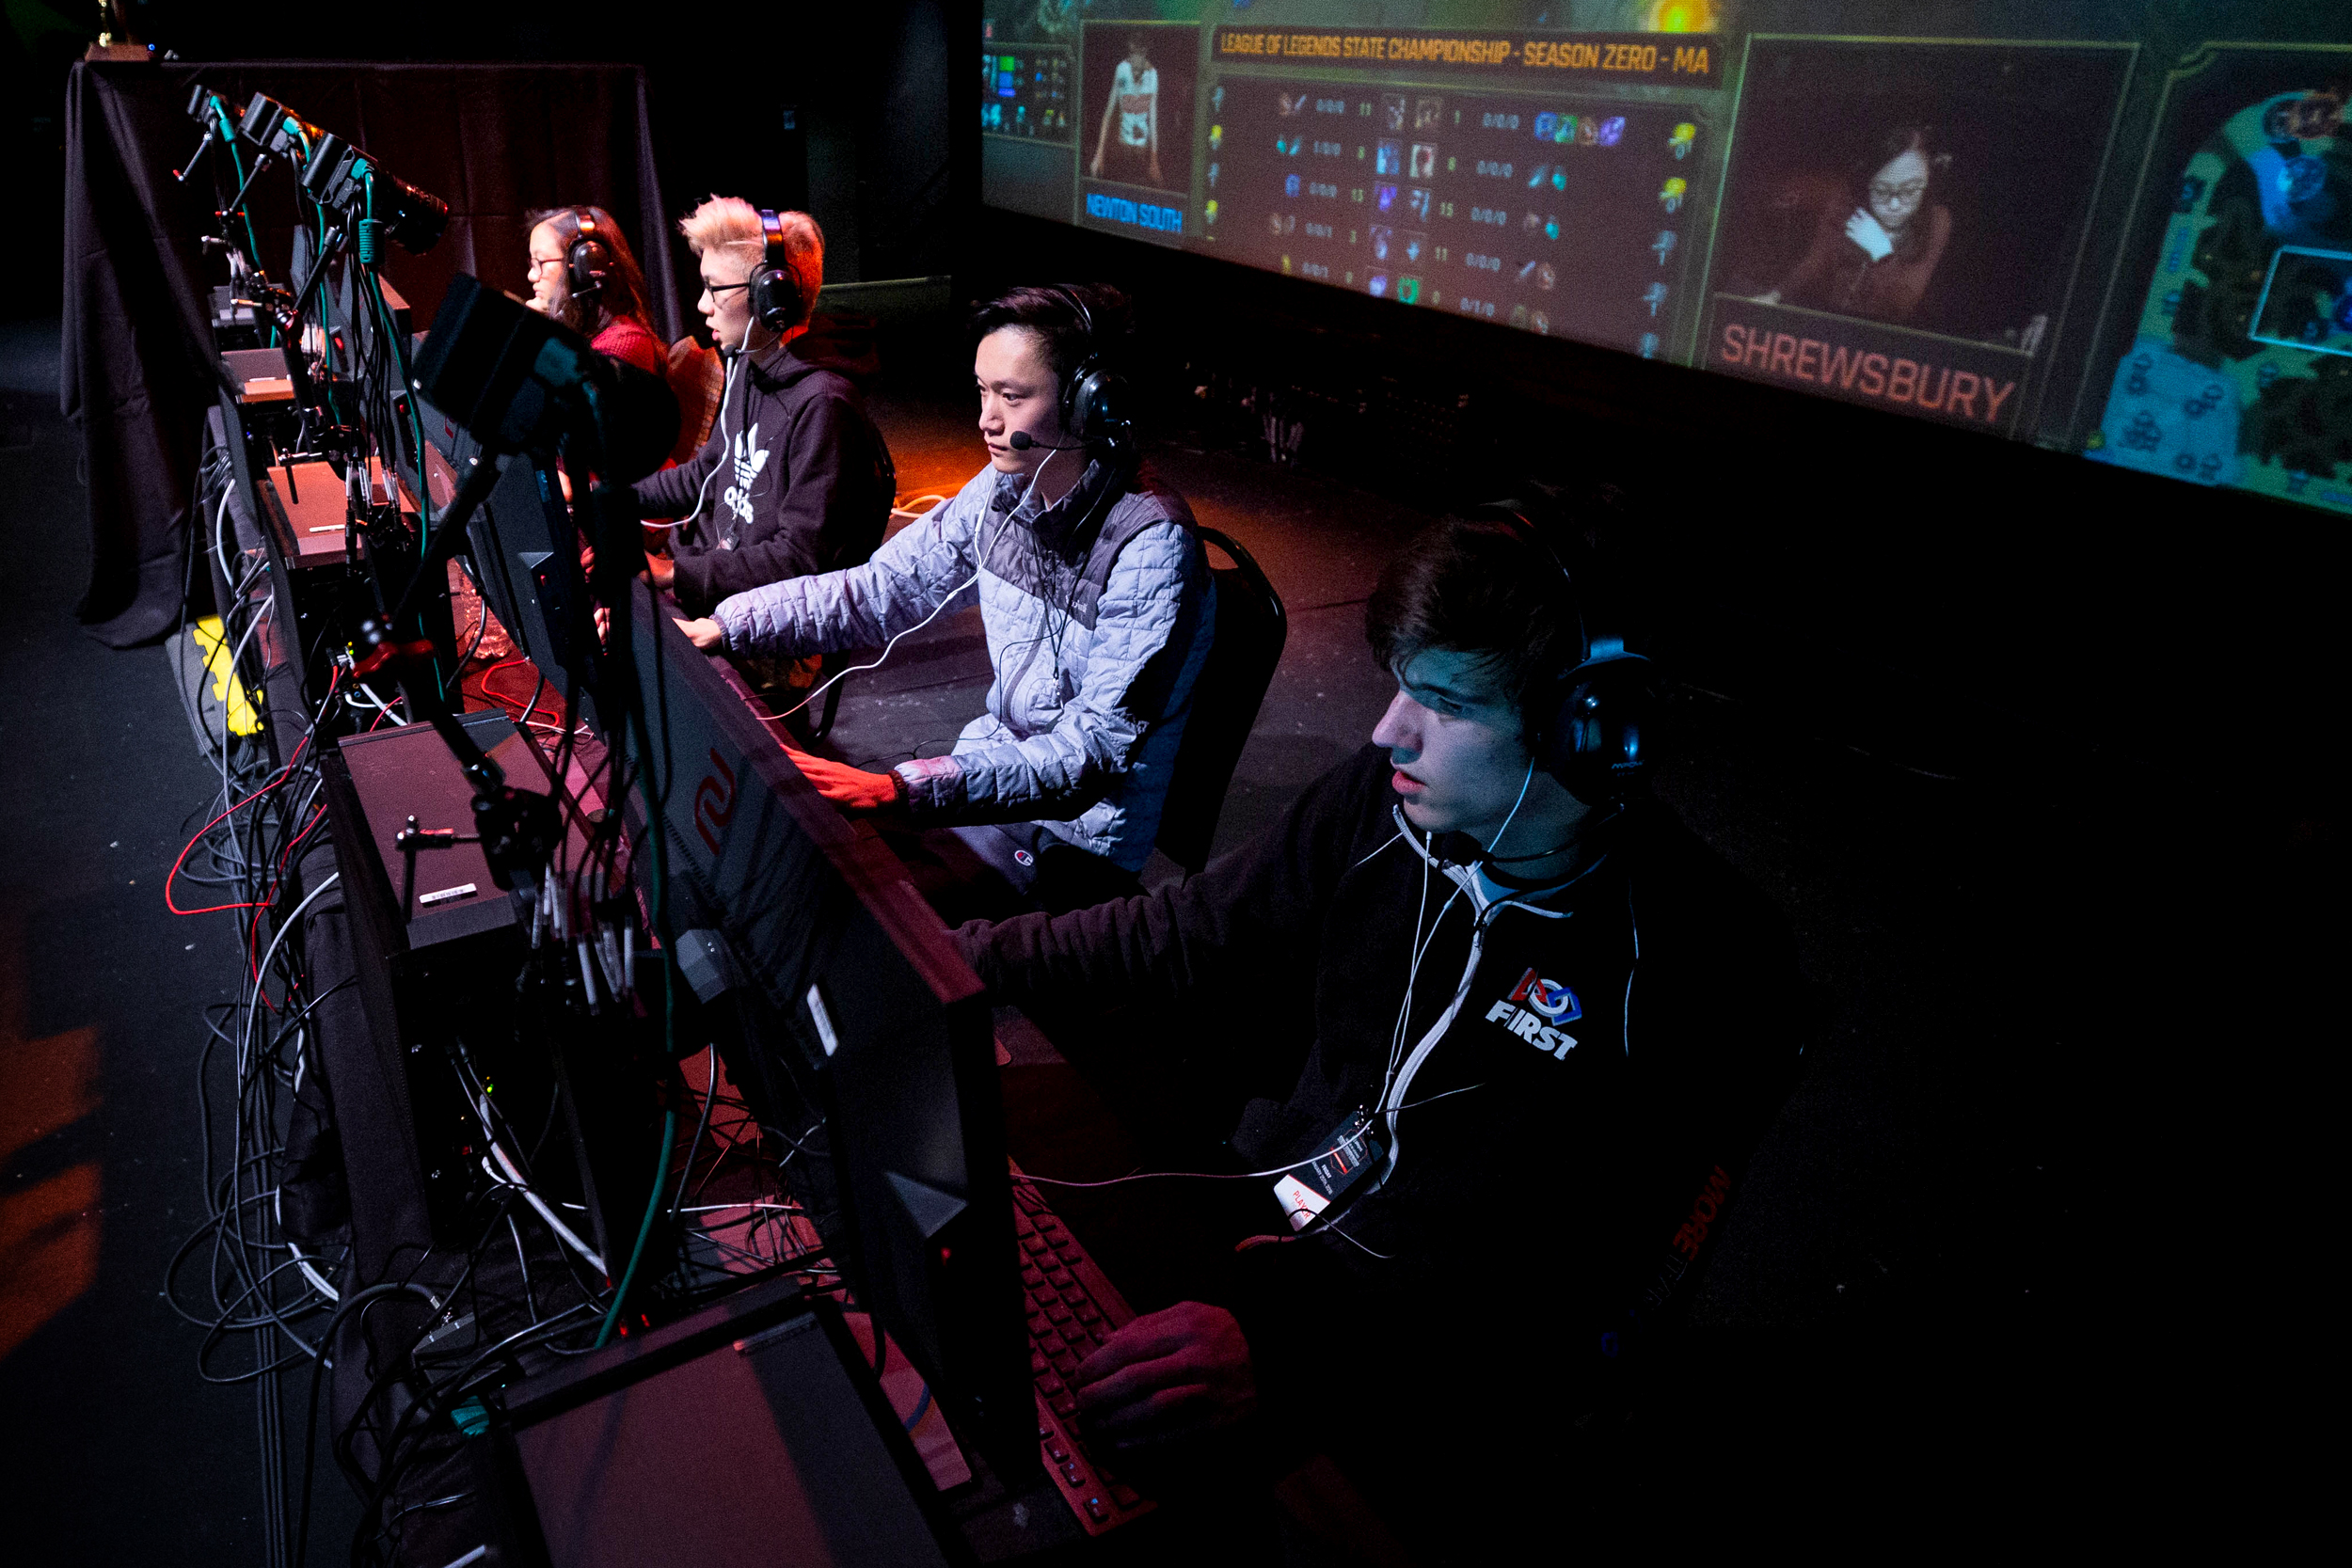 High-school-gamers-are-scoring-college-scholarships.-But-can-esports-make-varsity?